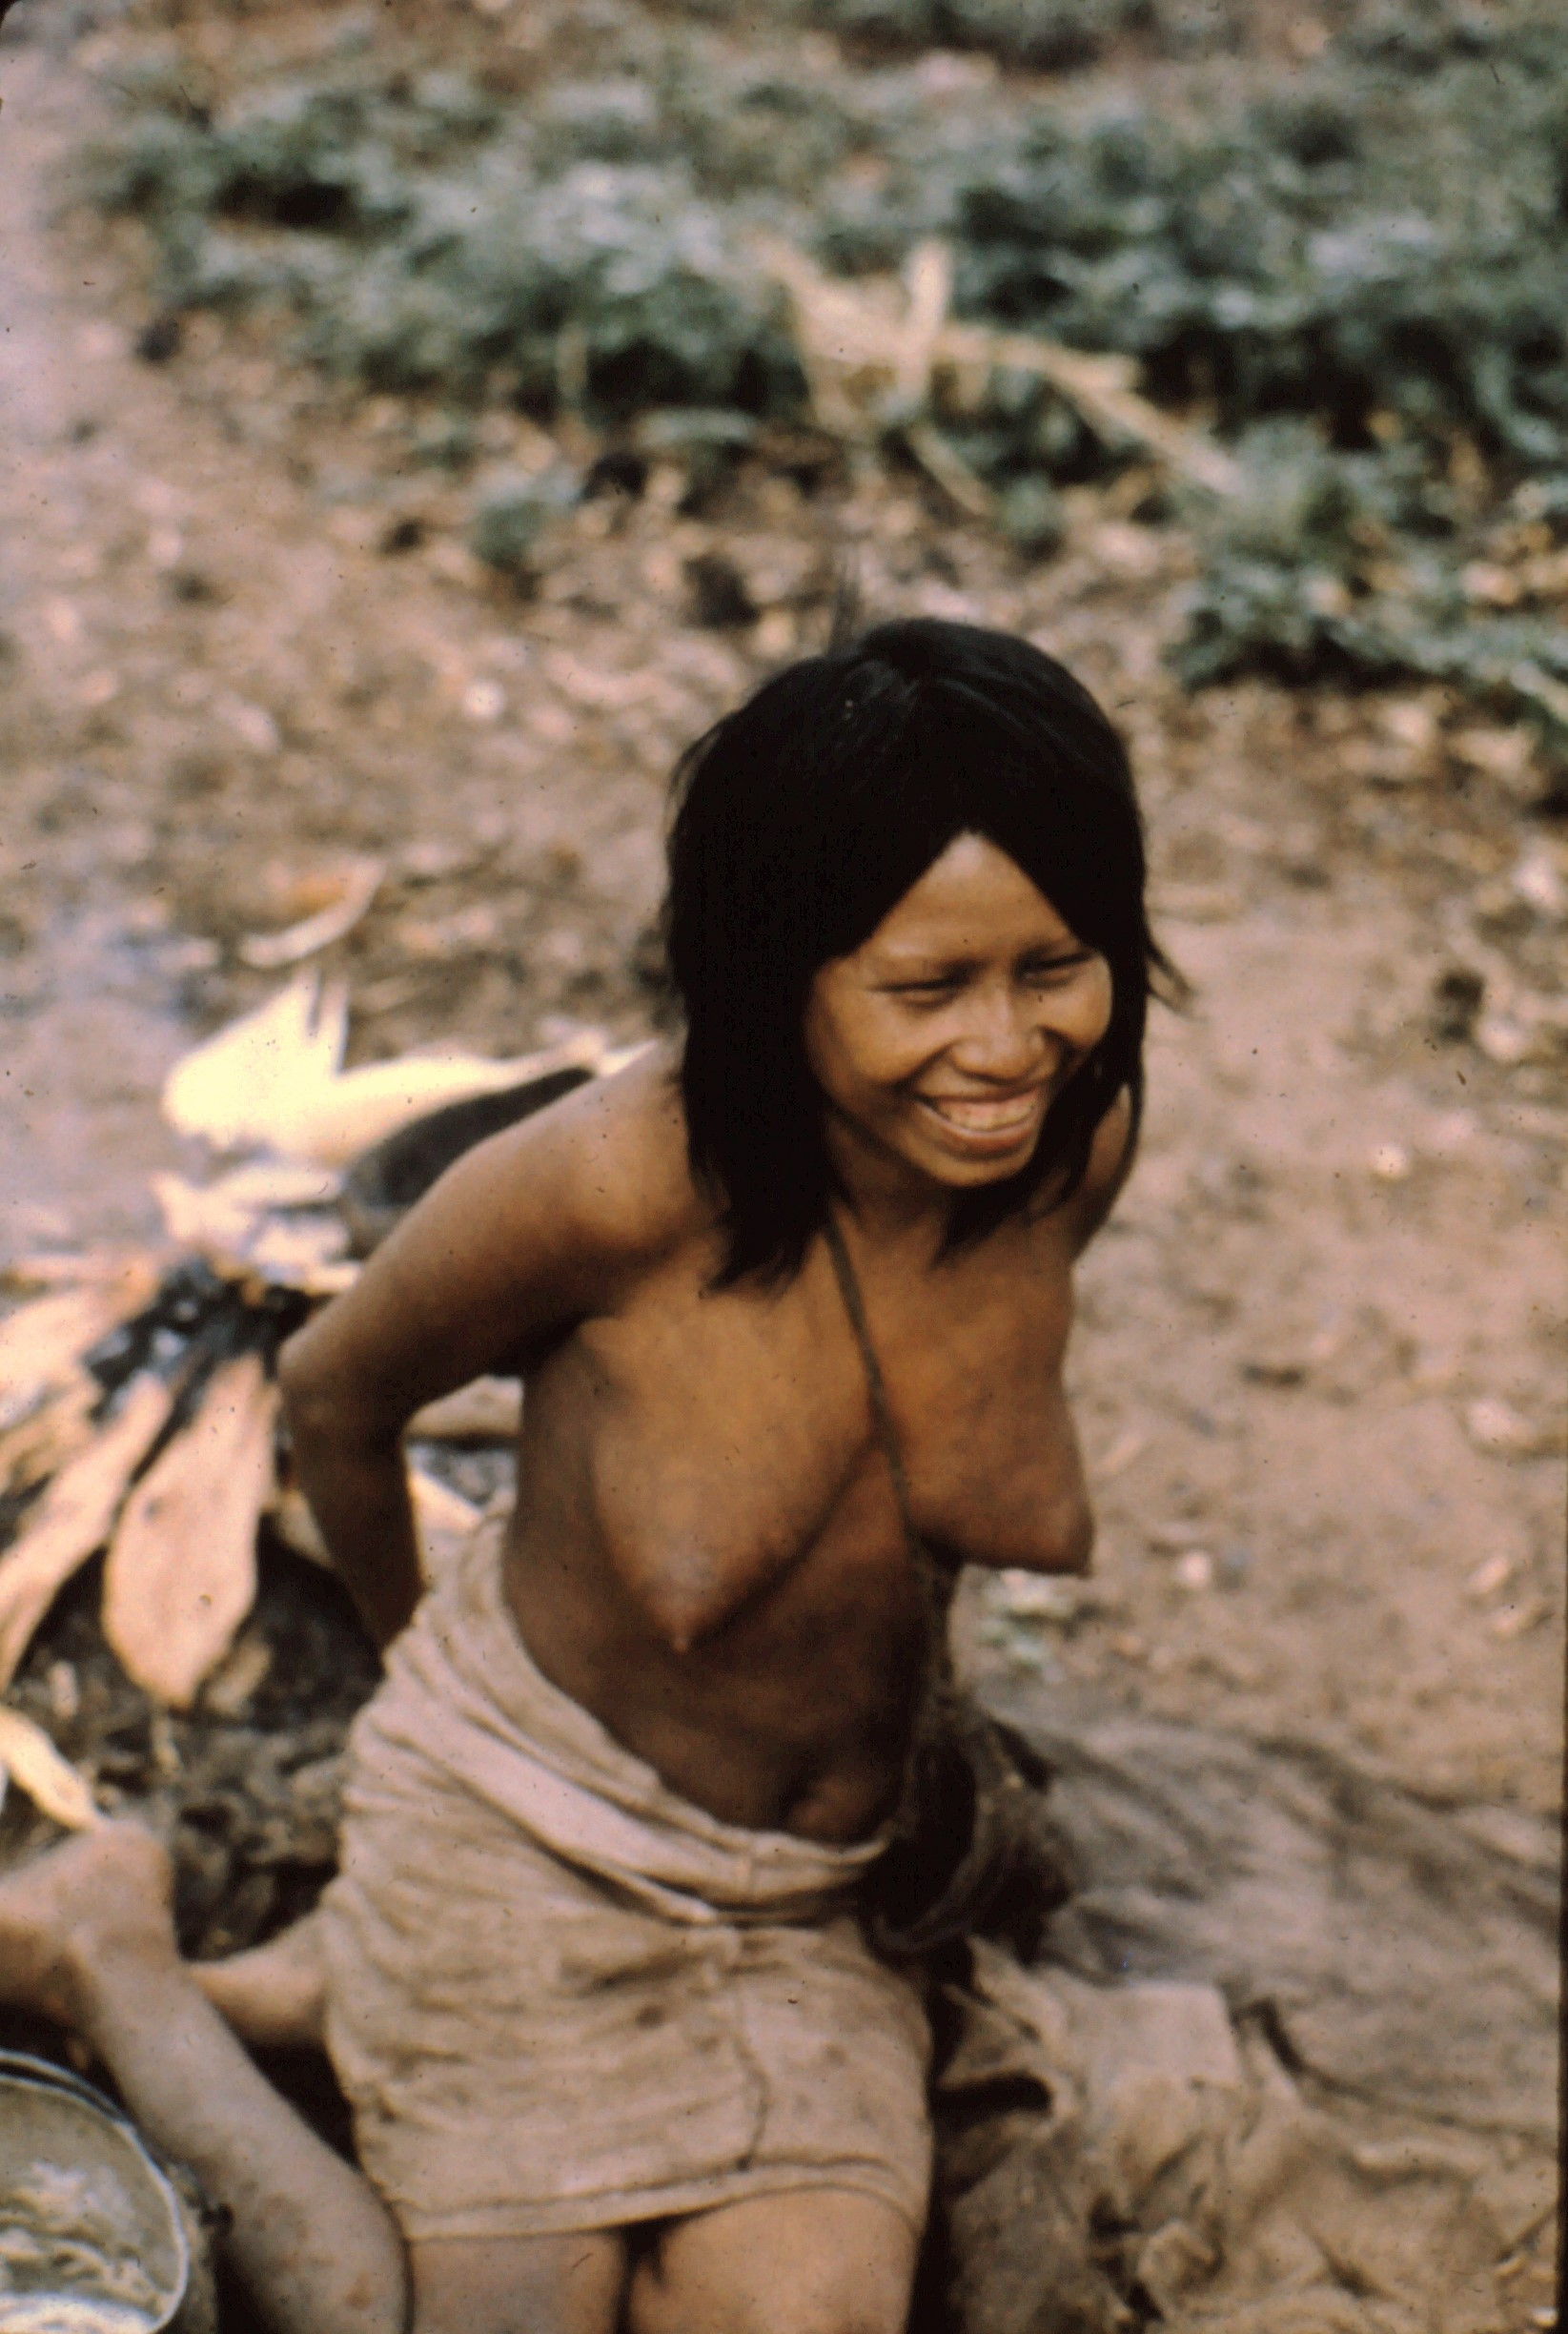 Ayoré woman takes circular bag off her back, but baby sling remains around her shoulder.